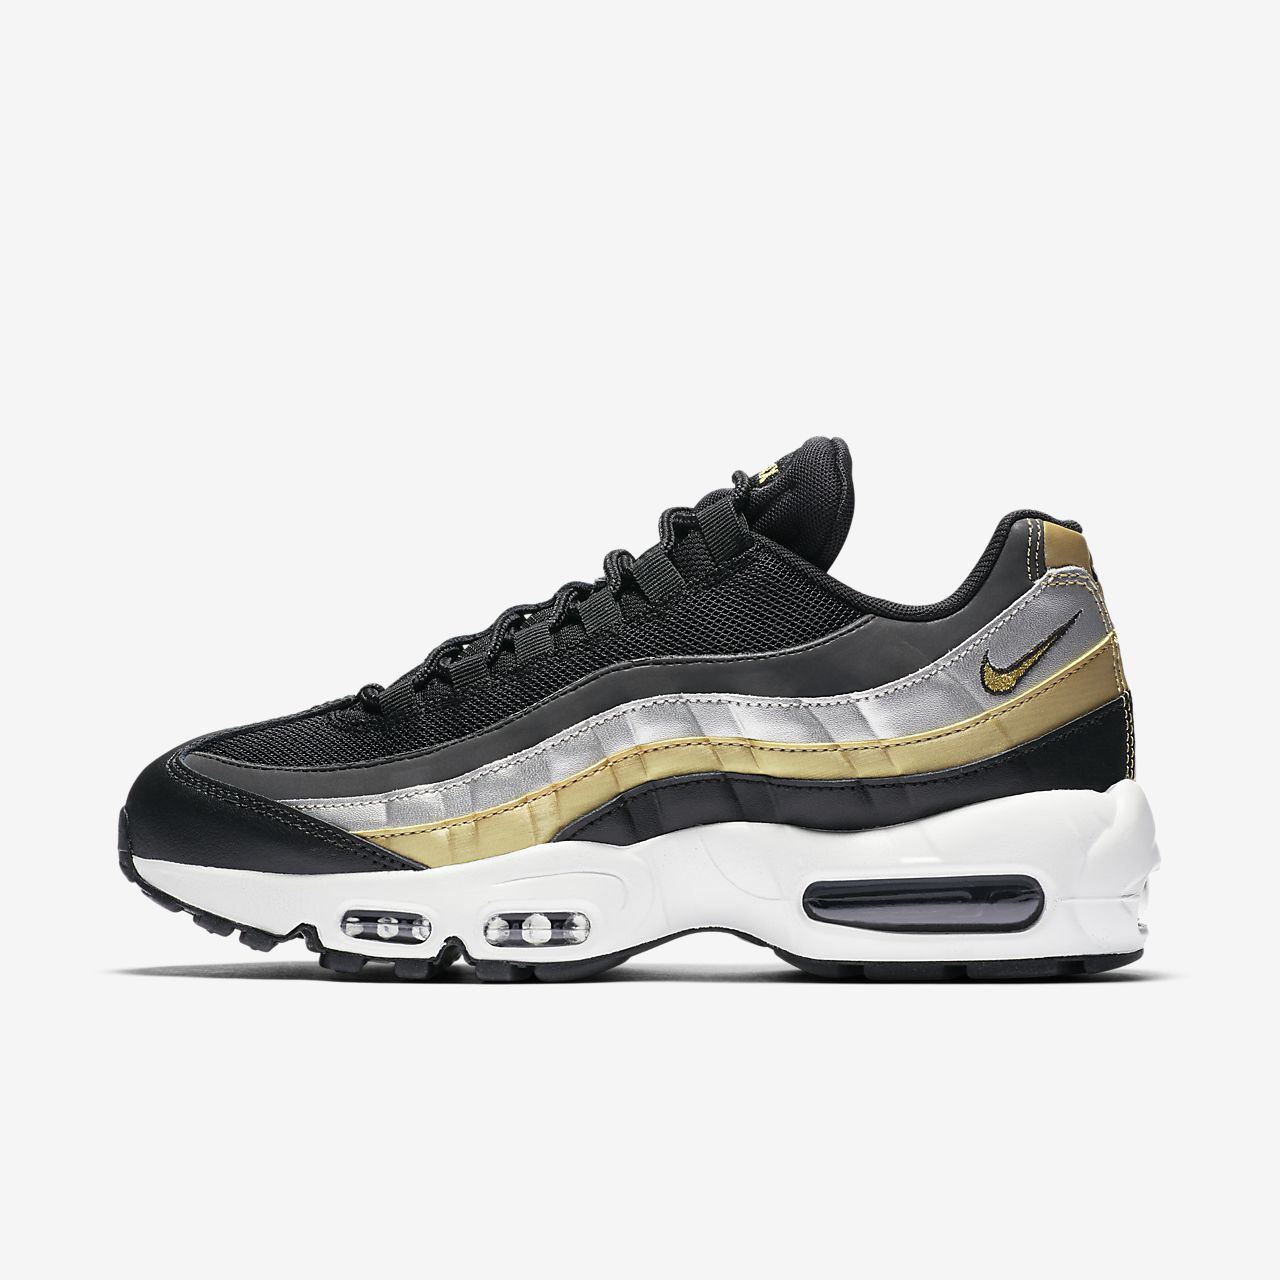 Nike Air Max 95 Lux Metallic Damenschuh